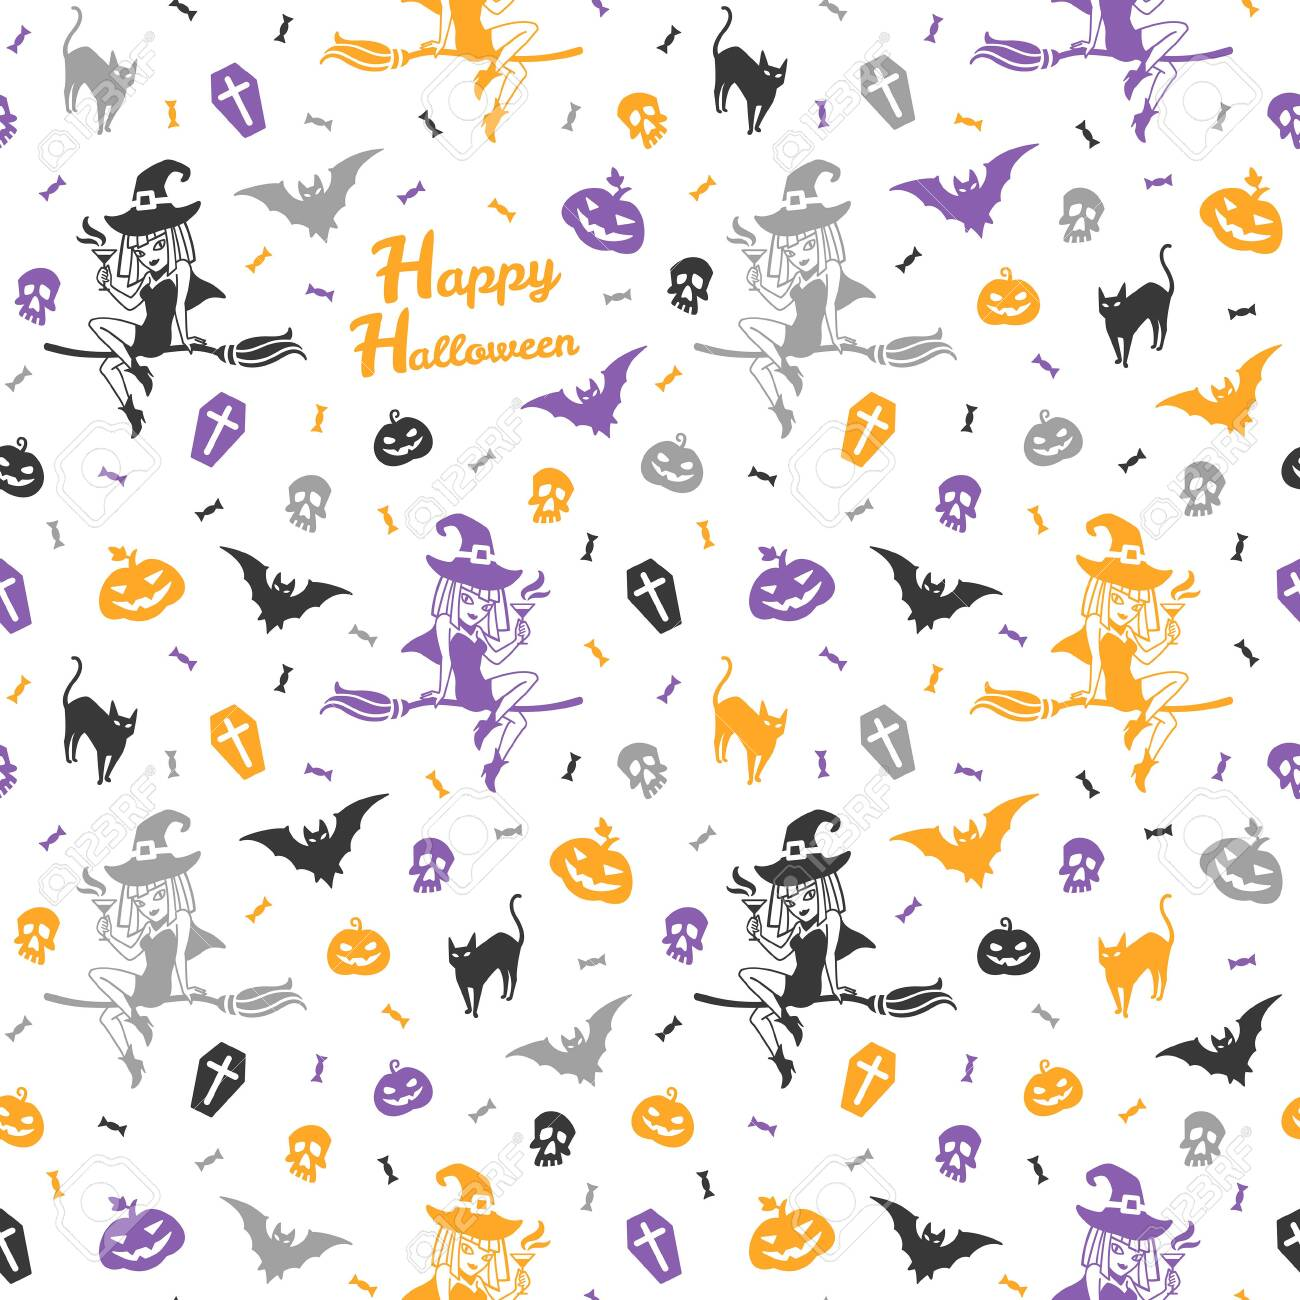 Happy Halloween Seamless Repeat Vector Pattern With Greeting Royalty Free Cliparts Vectors And Stock Illustration Image 128223701